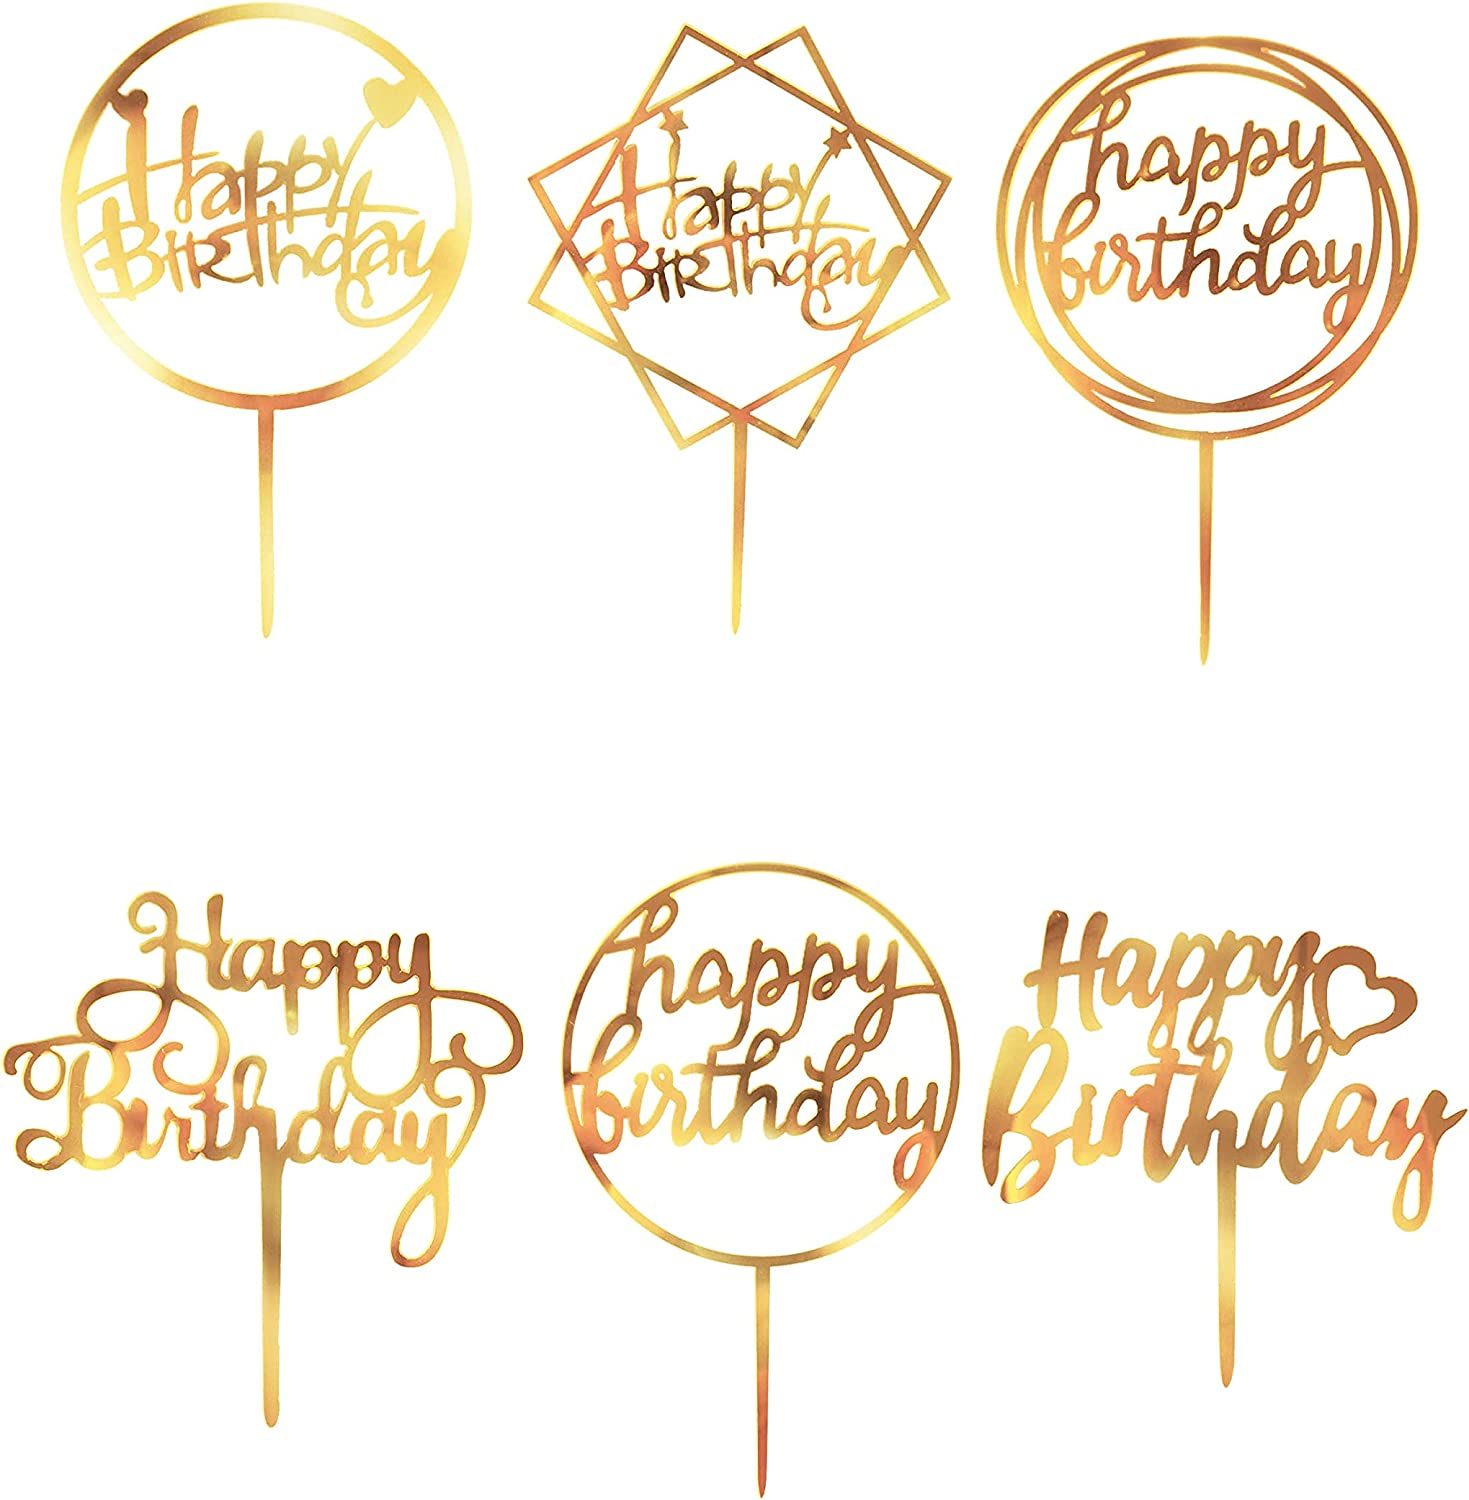 Happy Birthday Cake Toppers 18 Decoration 55% OFF Acrylic Ranking TOP2 Dou Pcs